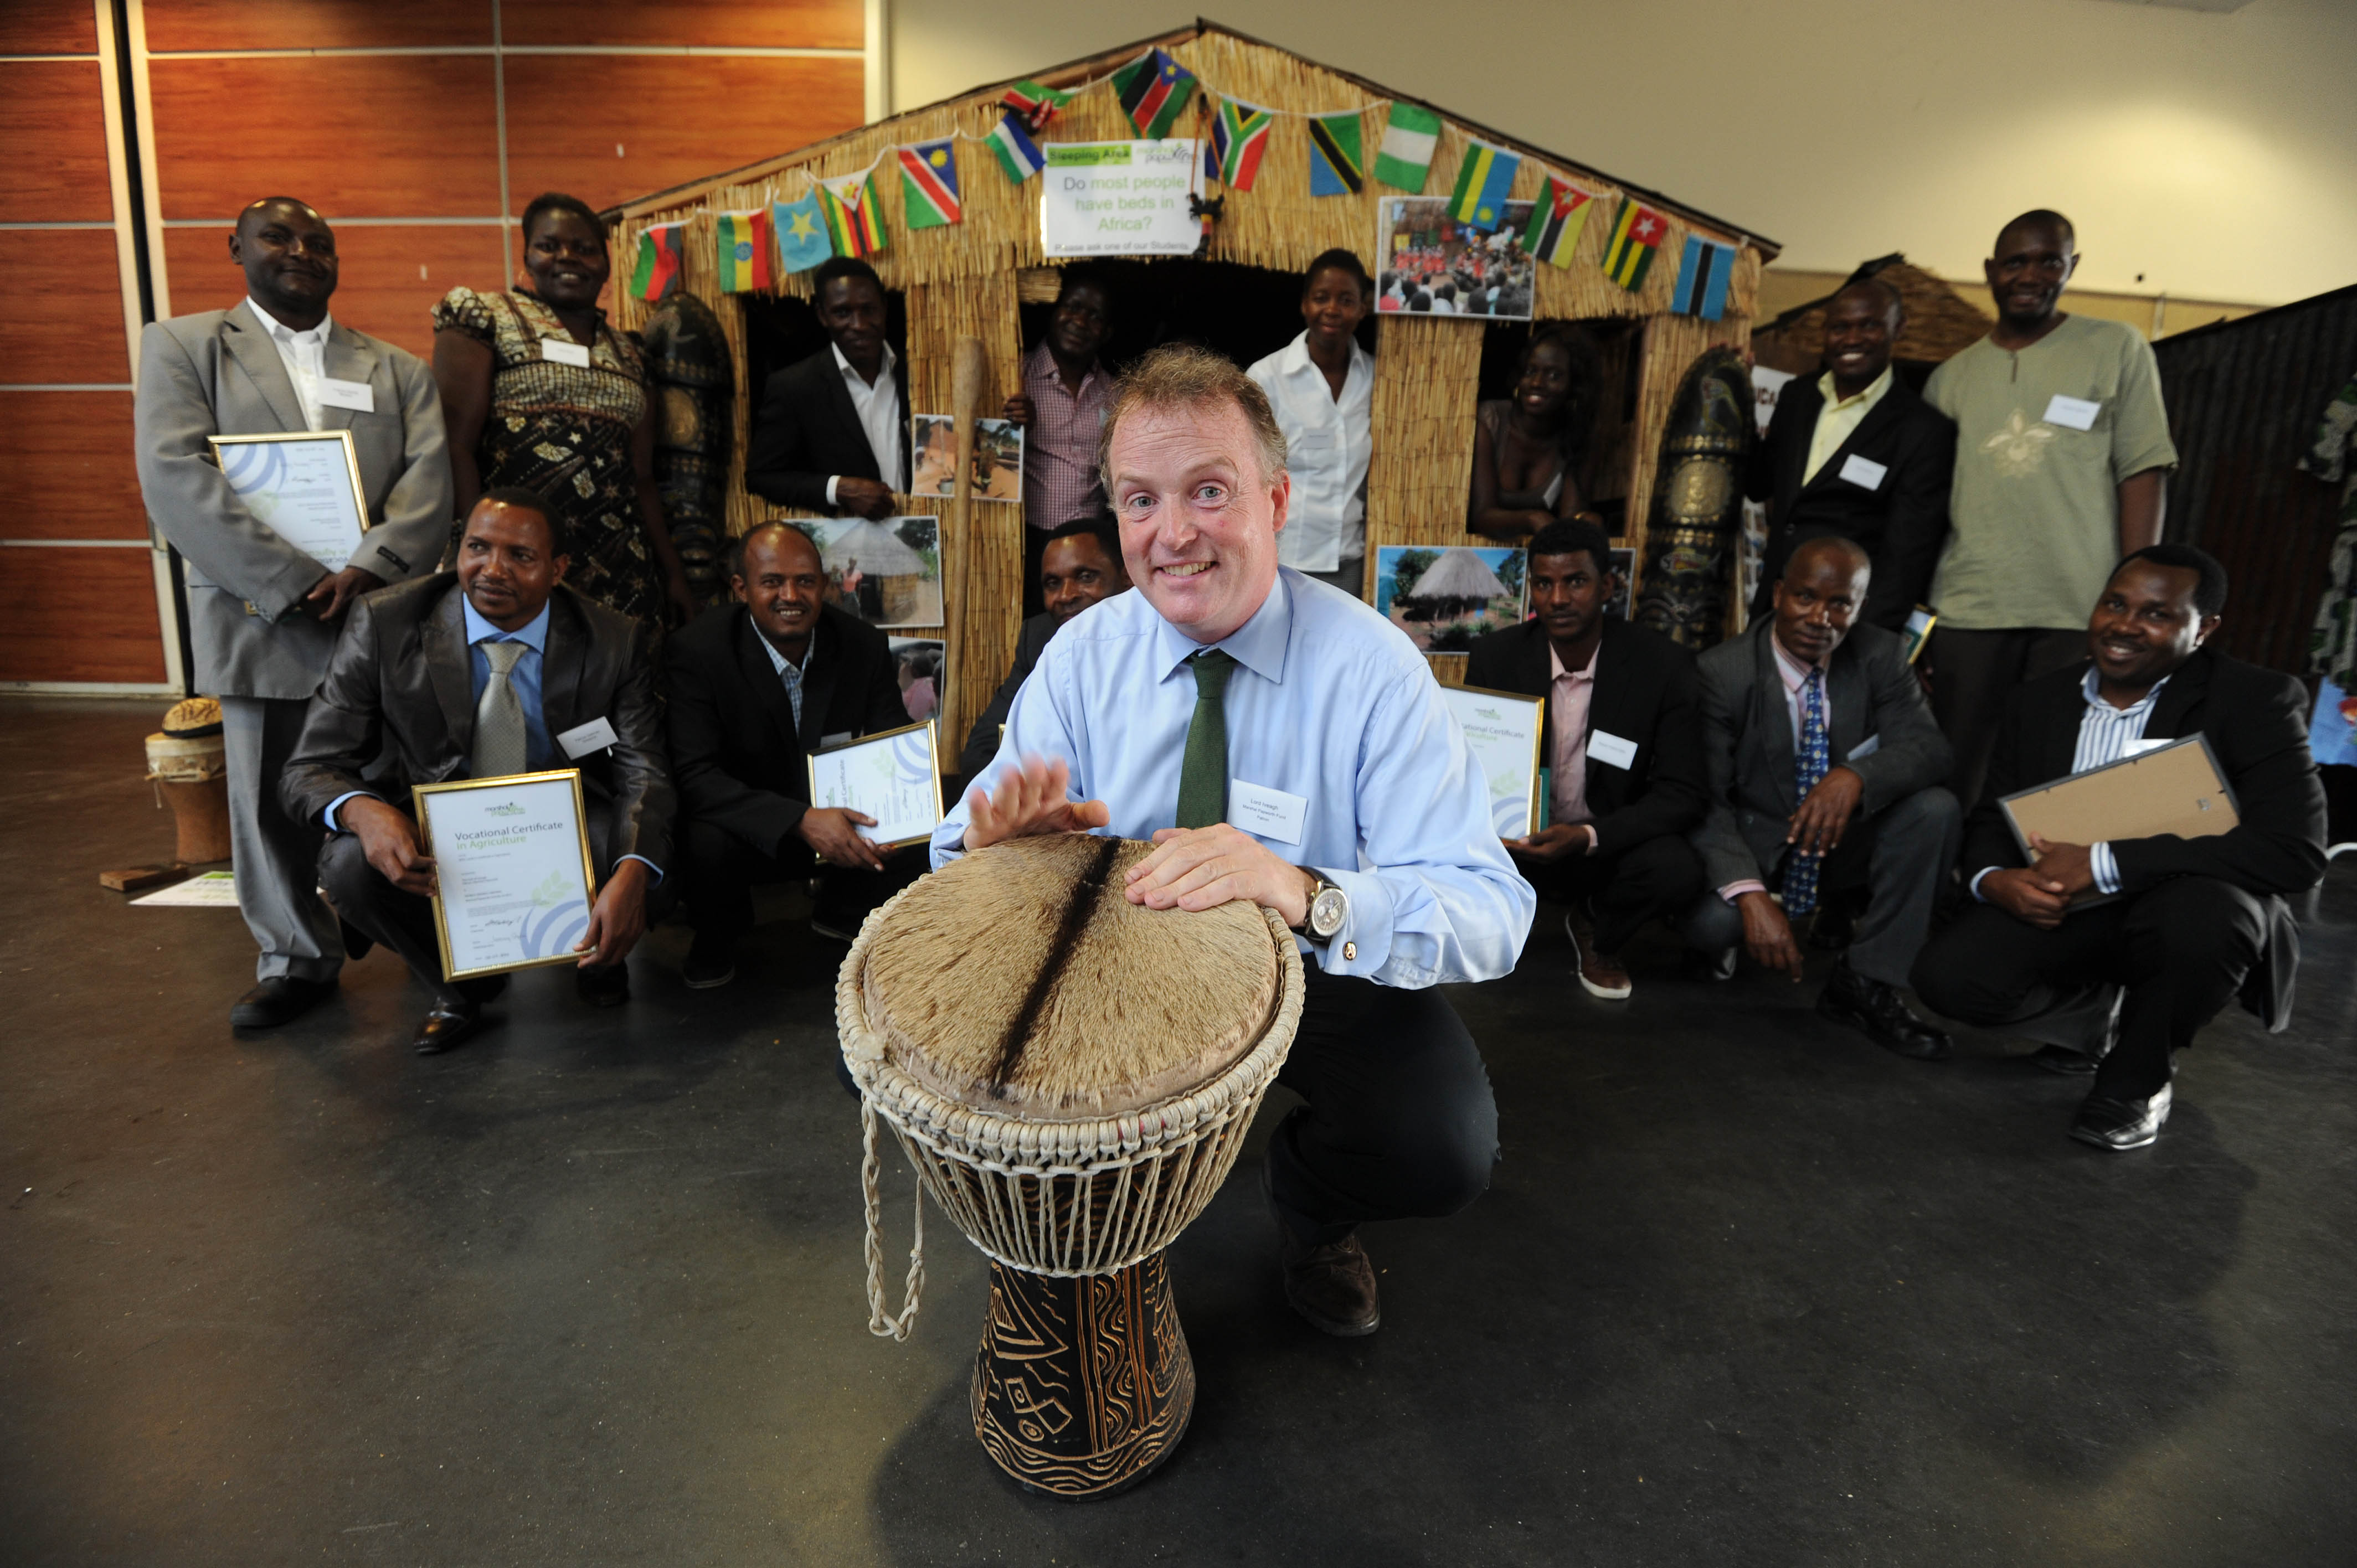 A 'Taste of Africa' in the heart of East Anglia